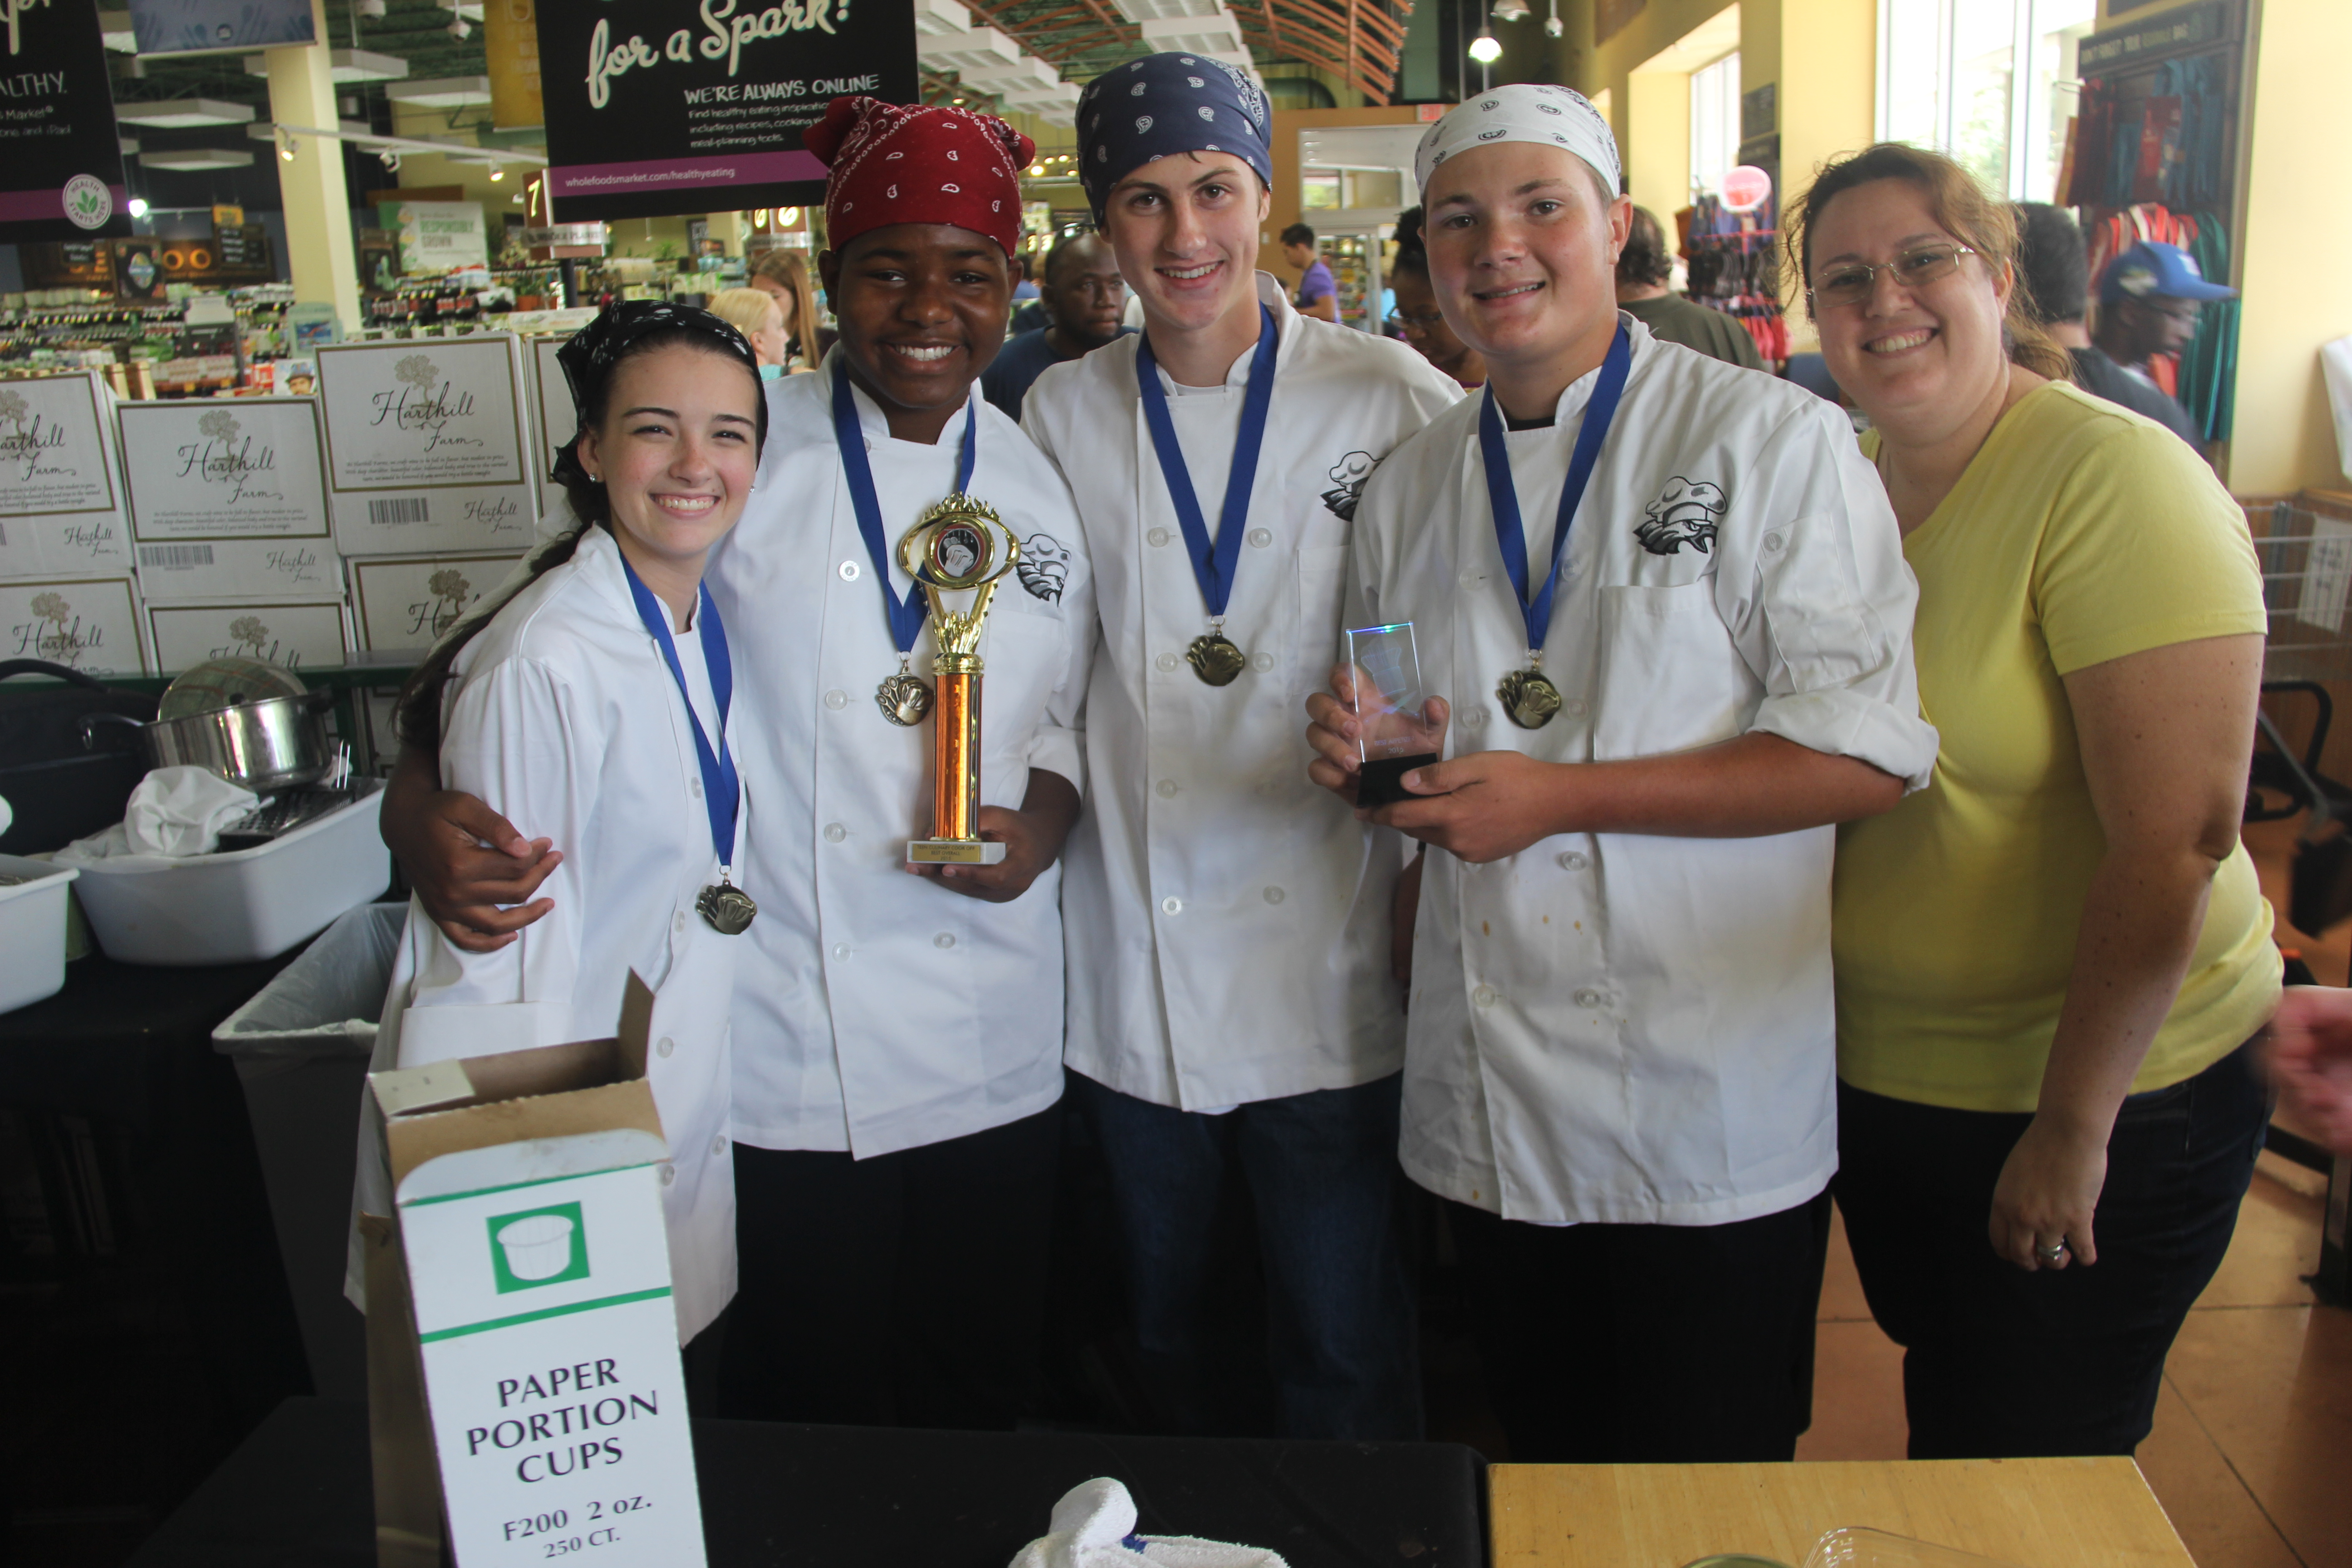 Culinary Team Member Whole Foods